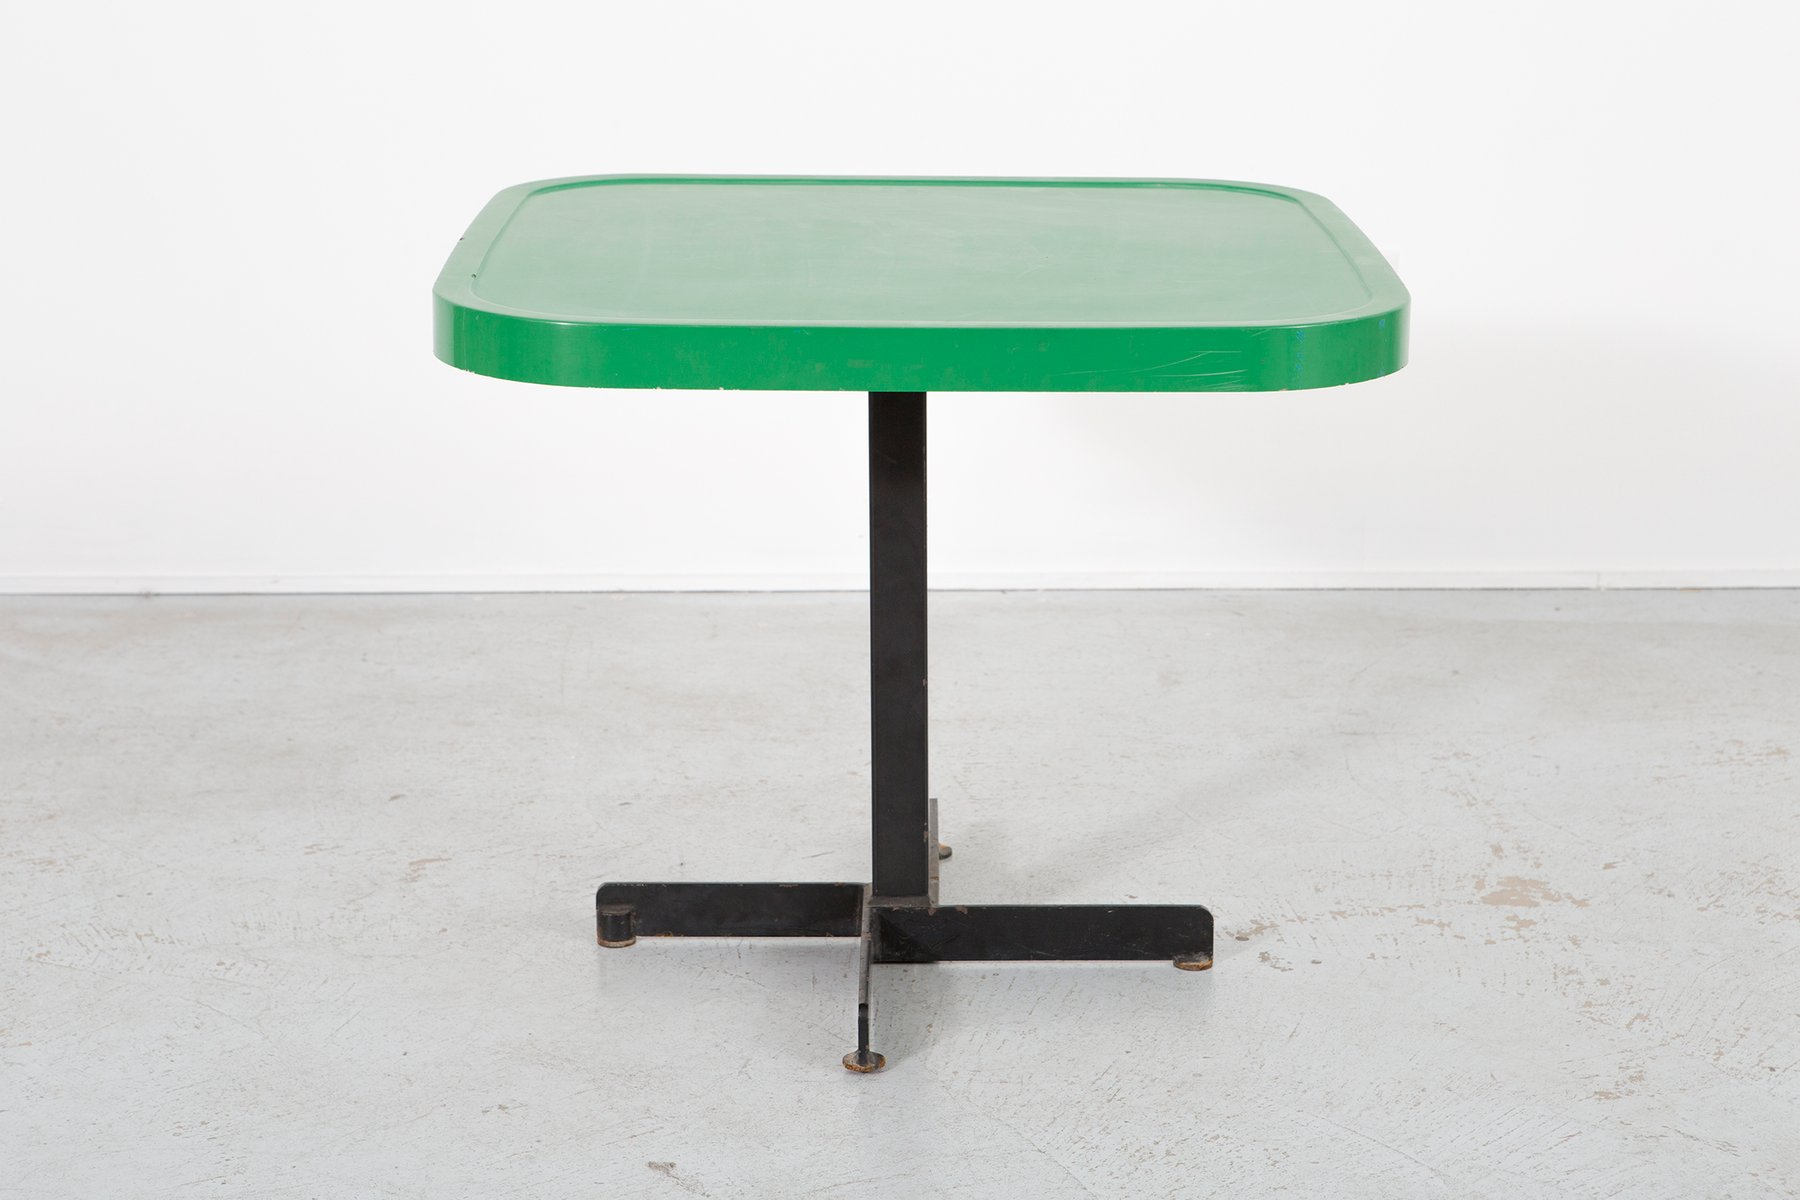 green metal enameled table by charlotte perriand 1960s for sale at pamono. Black Bedroom Furniture Sets. Home Design Ideas